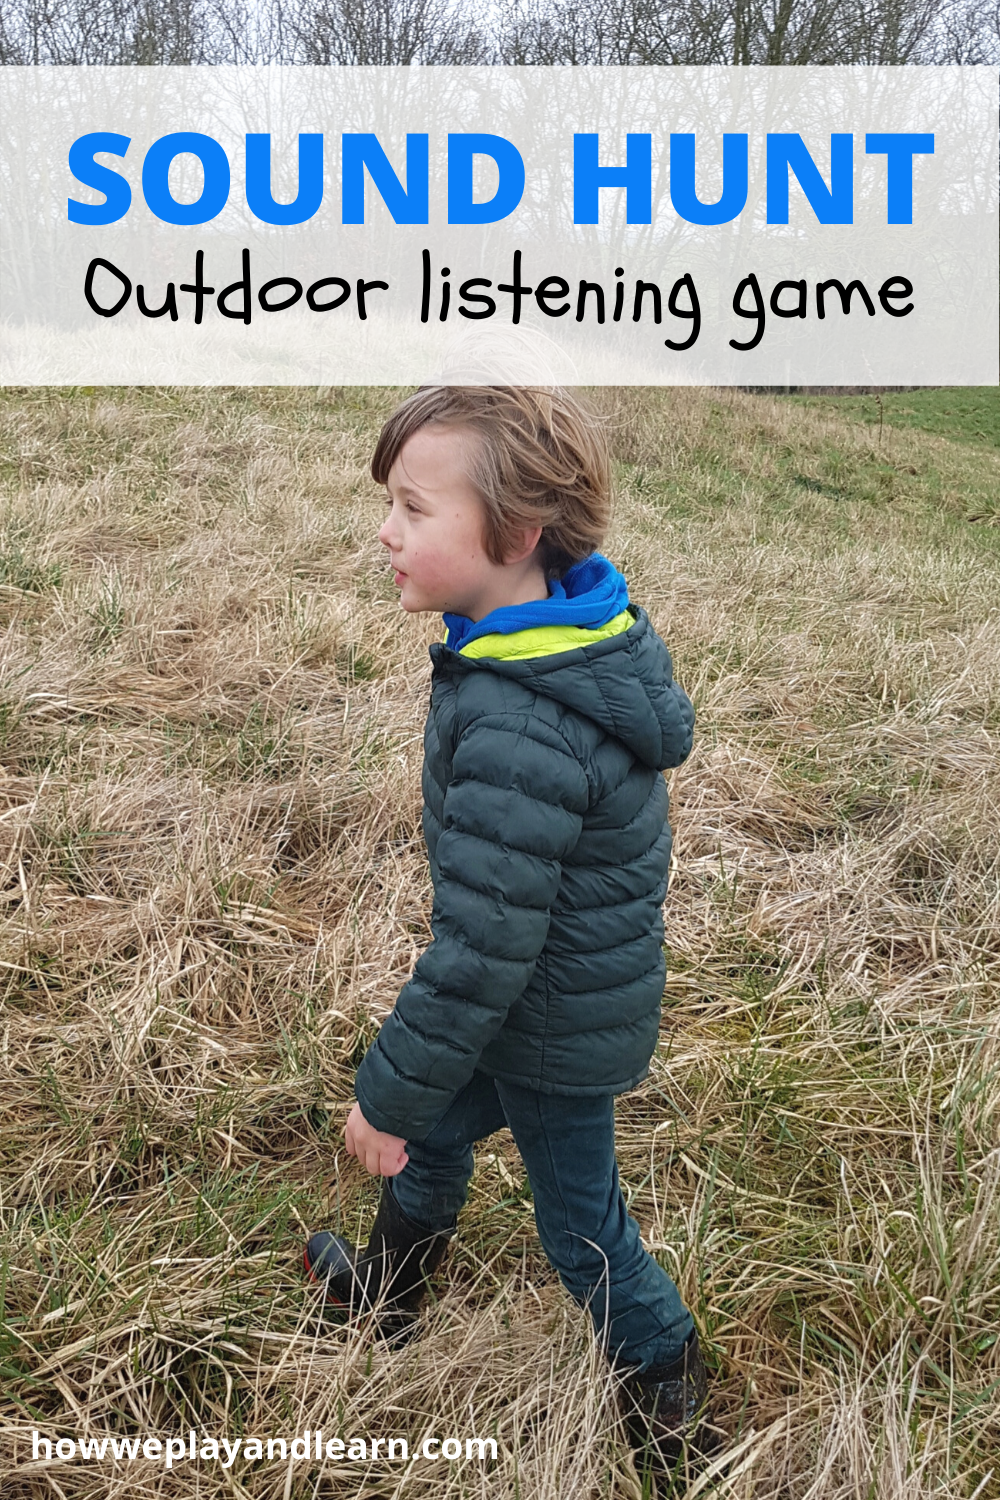 Going on a sound hunt, sensory play for kids, howweplayandlearn